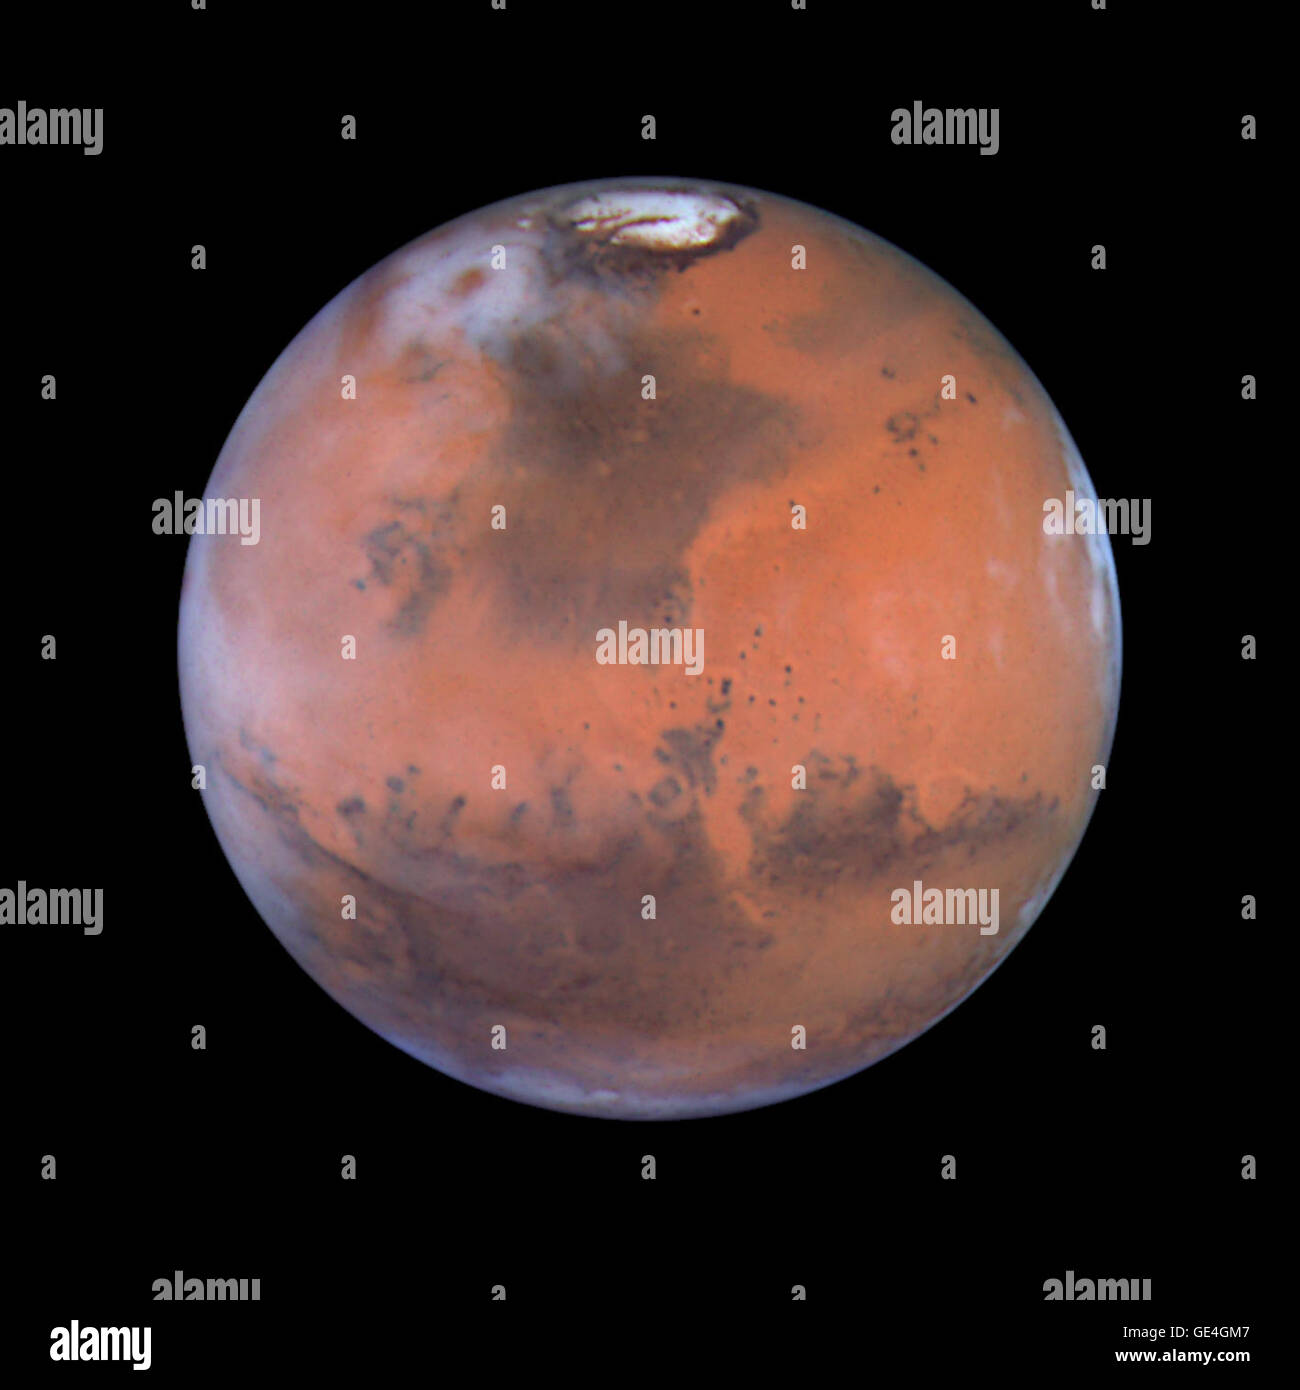 Taking advantage of Mars's closest approach to Earth in eight years, astronomers using NASA's Hubble Space Telescope Stock Photo